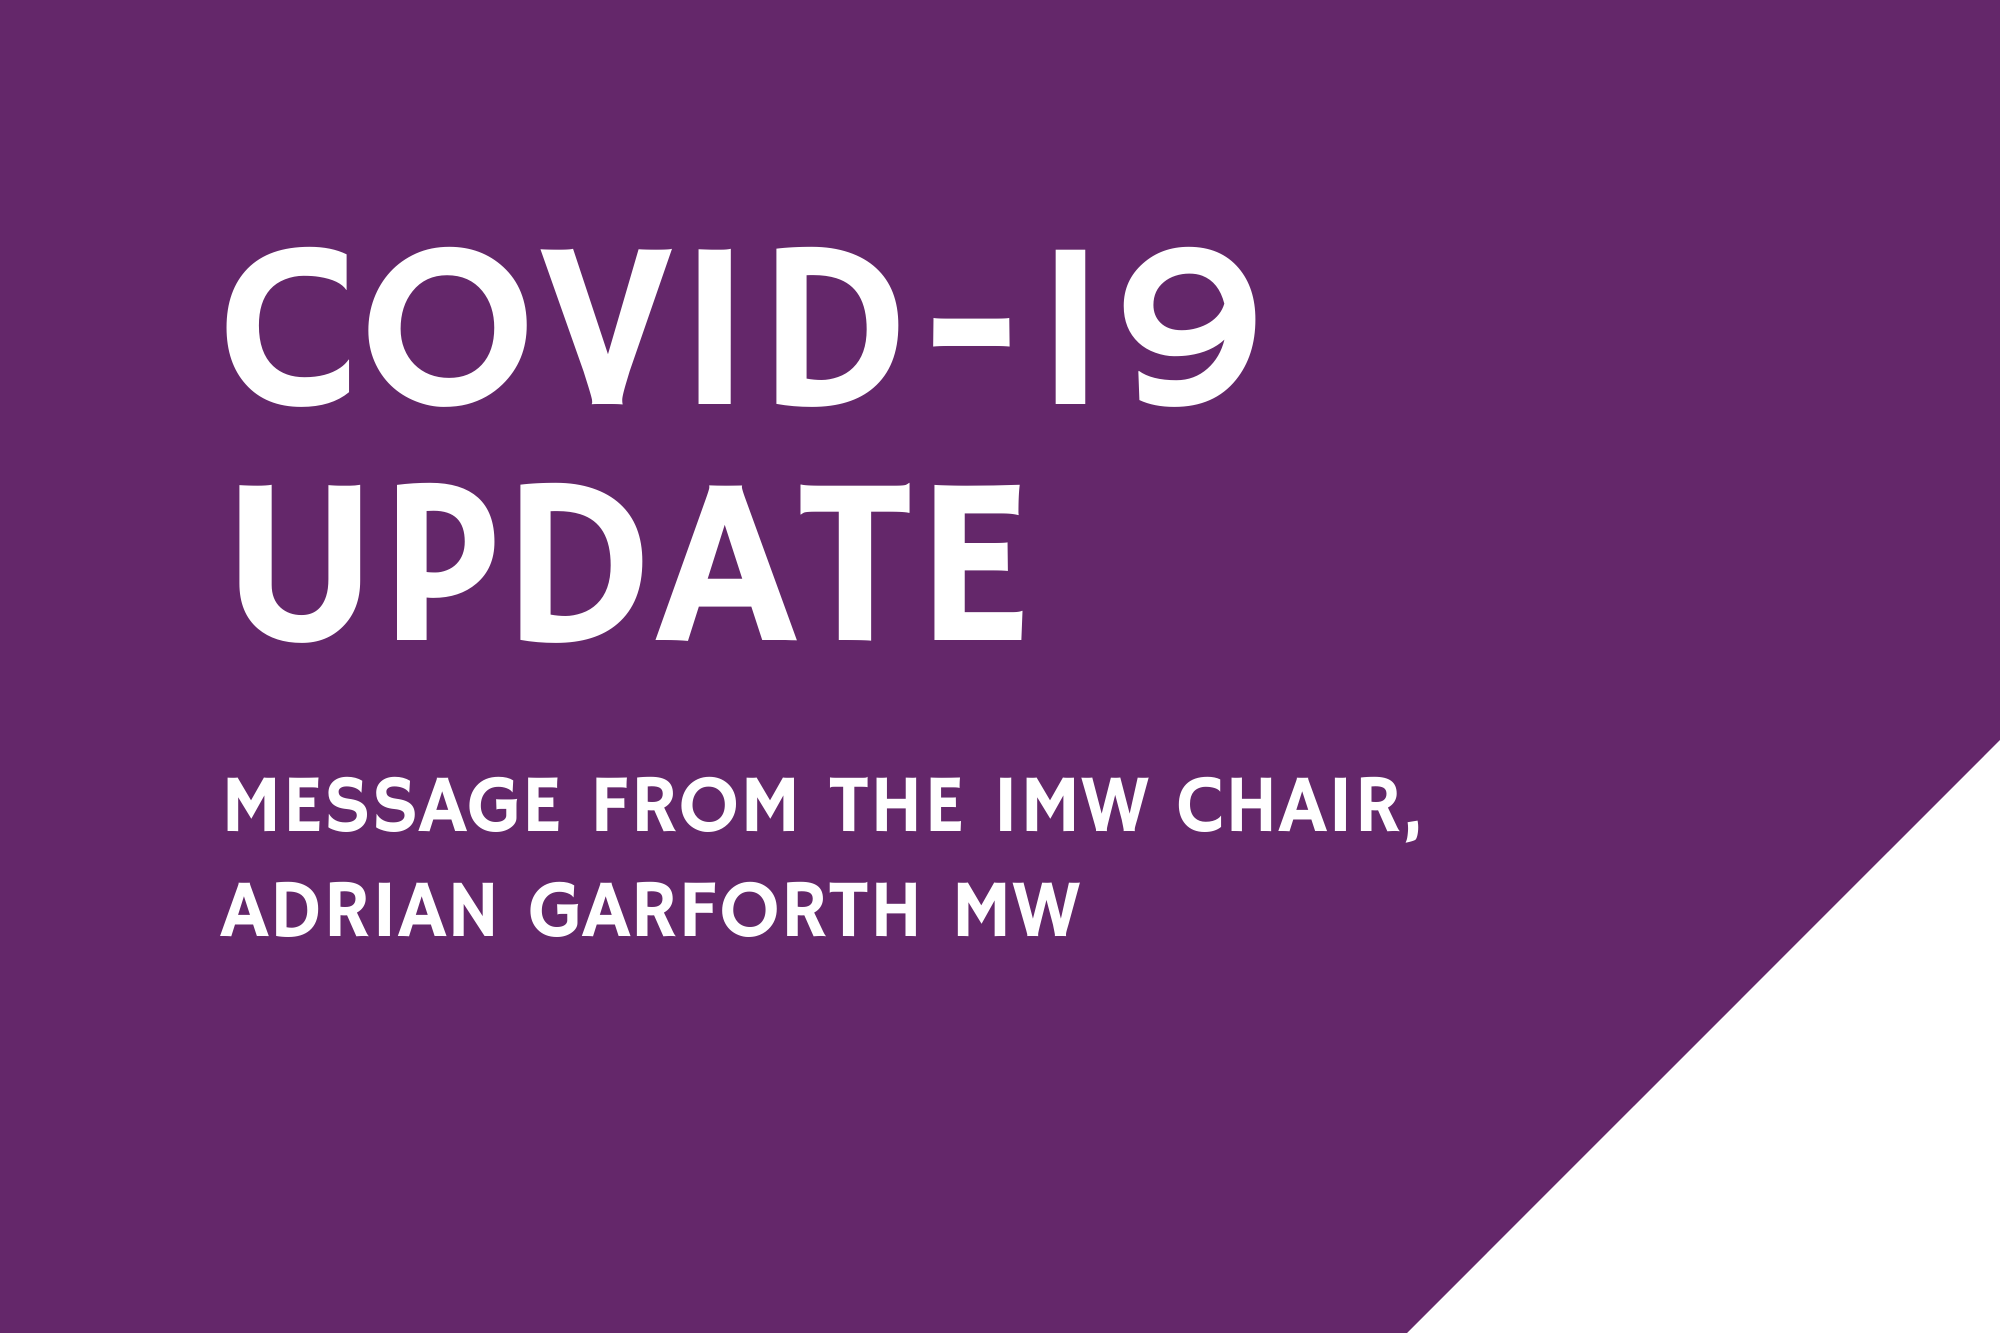 Message from the IMW Chair